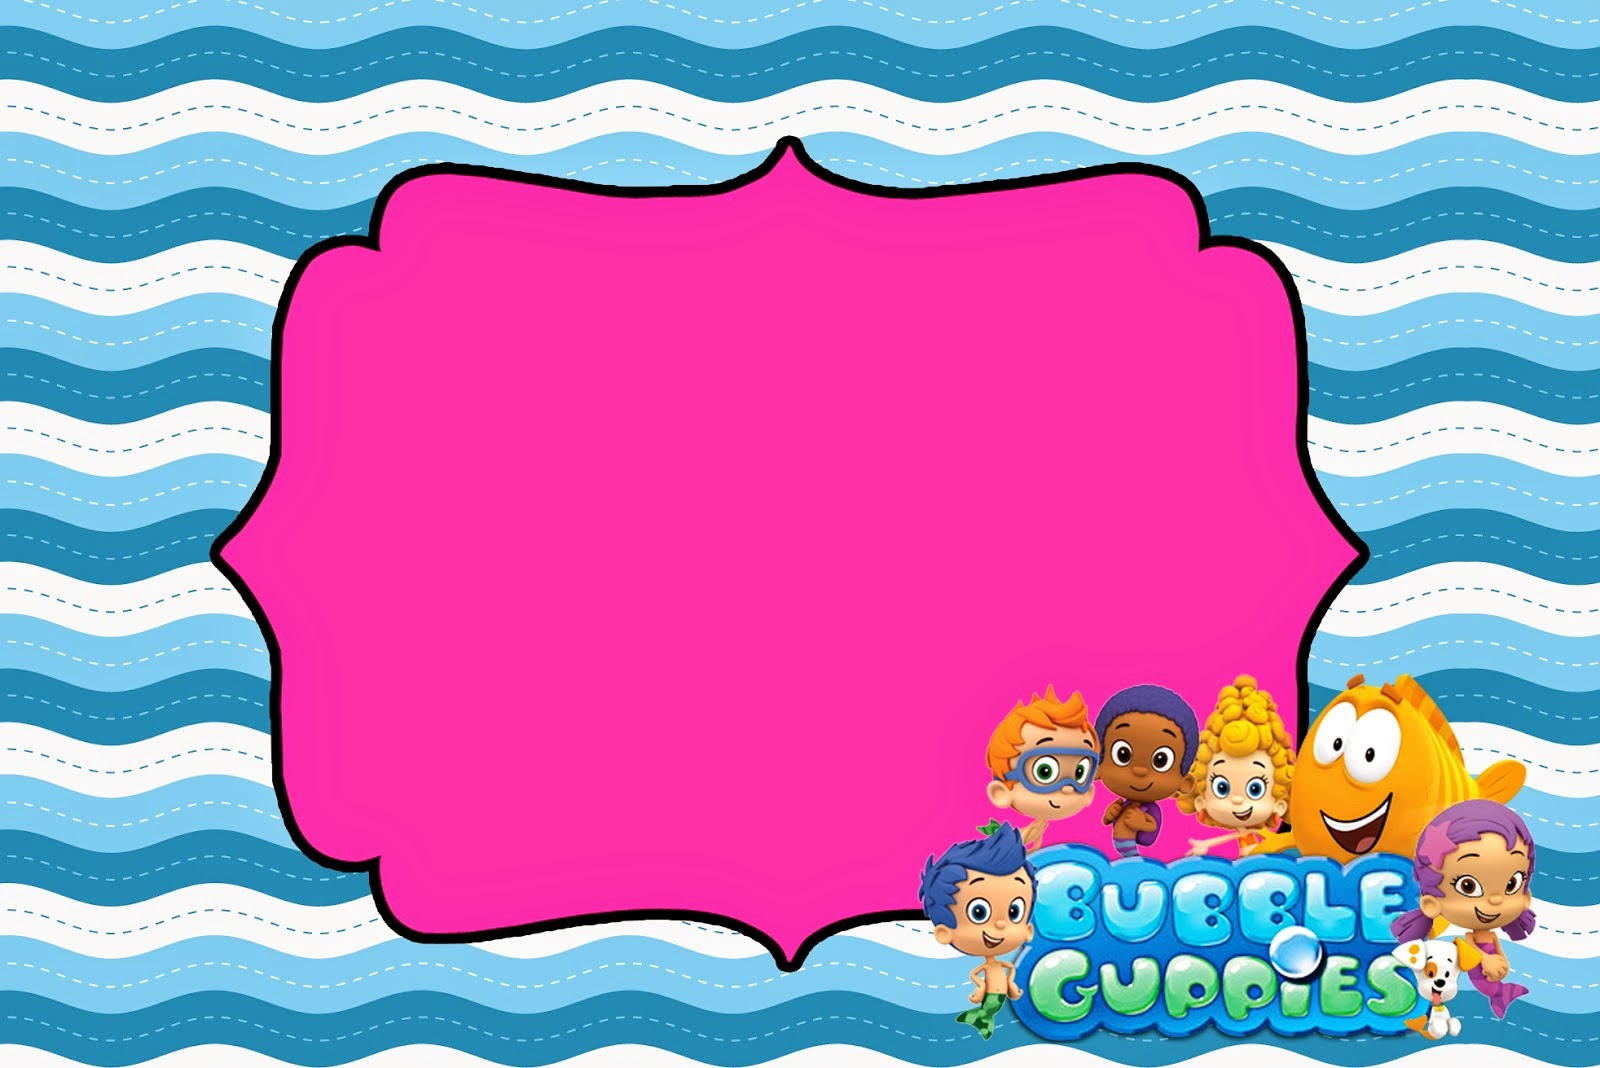 Bubble Guppies Free Printable Invitations Is It For Parties Is